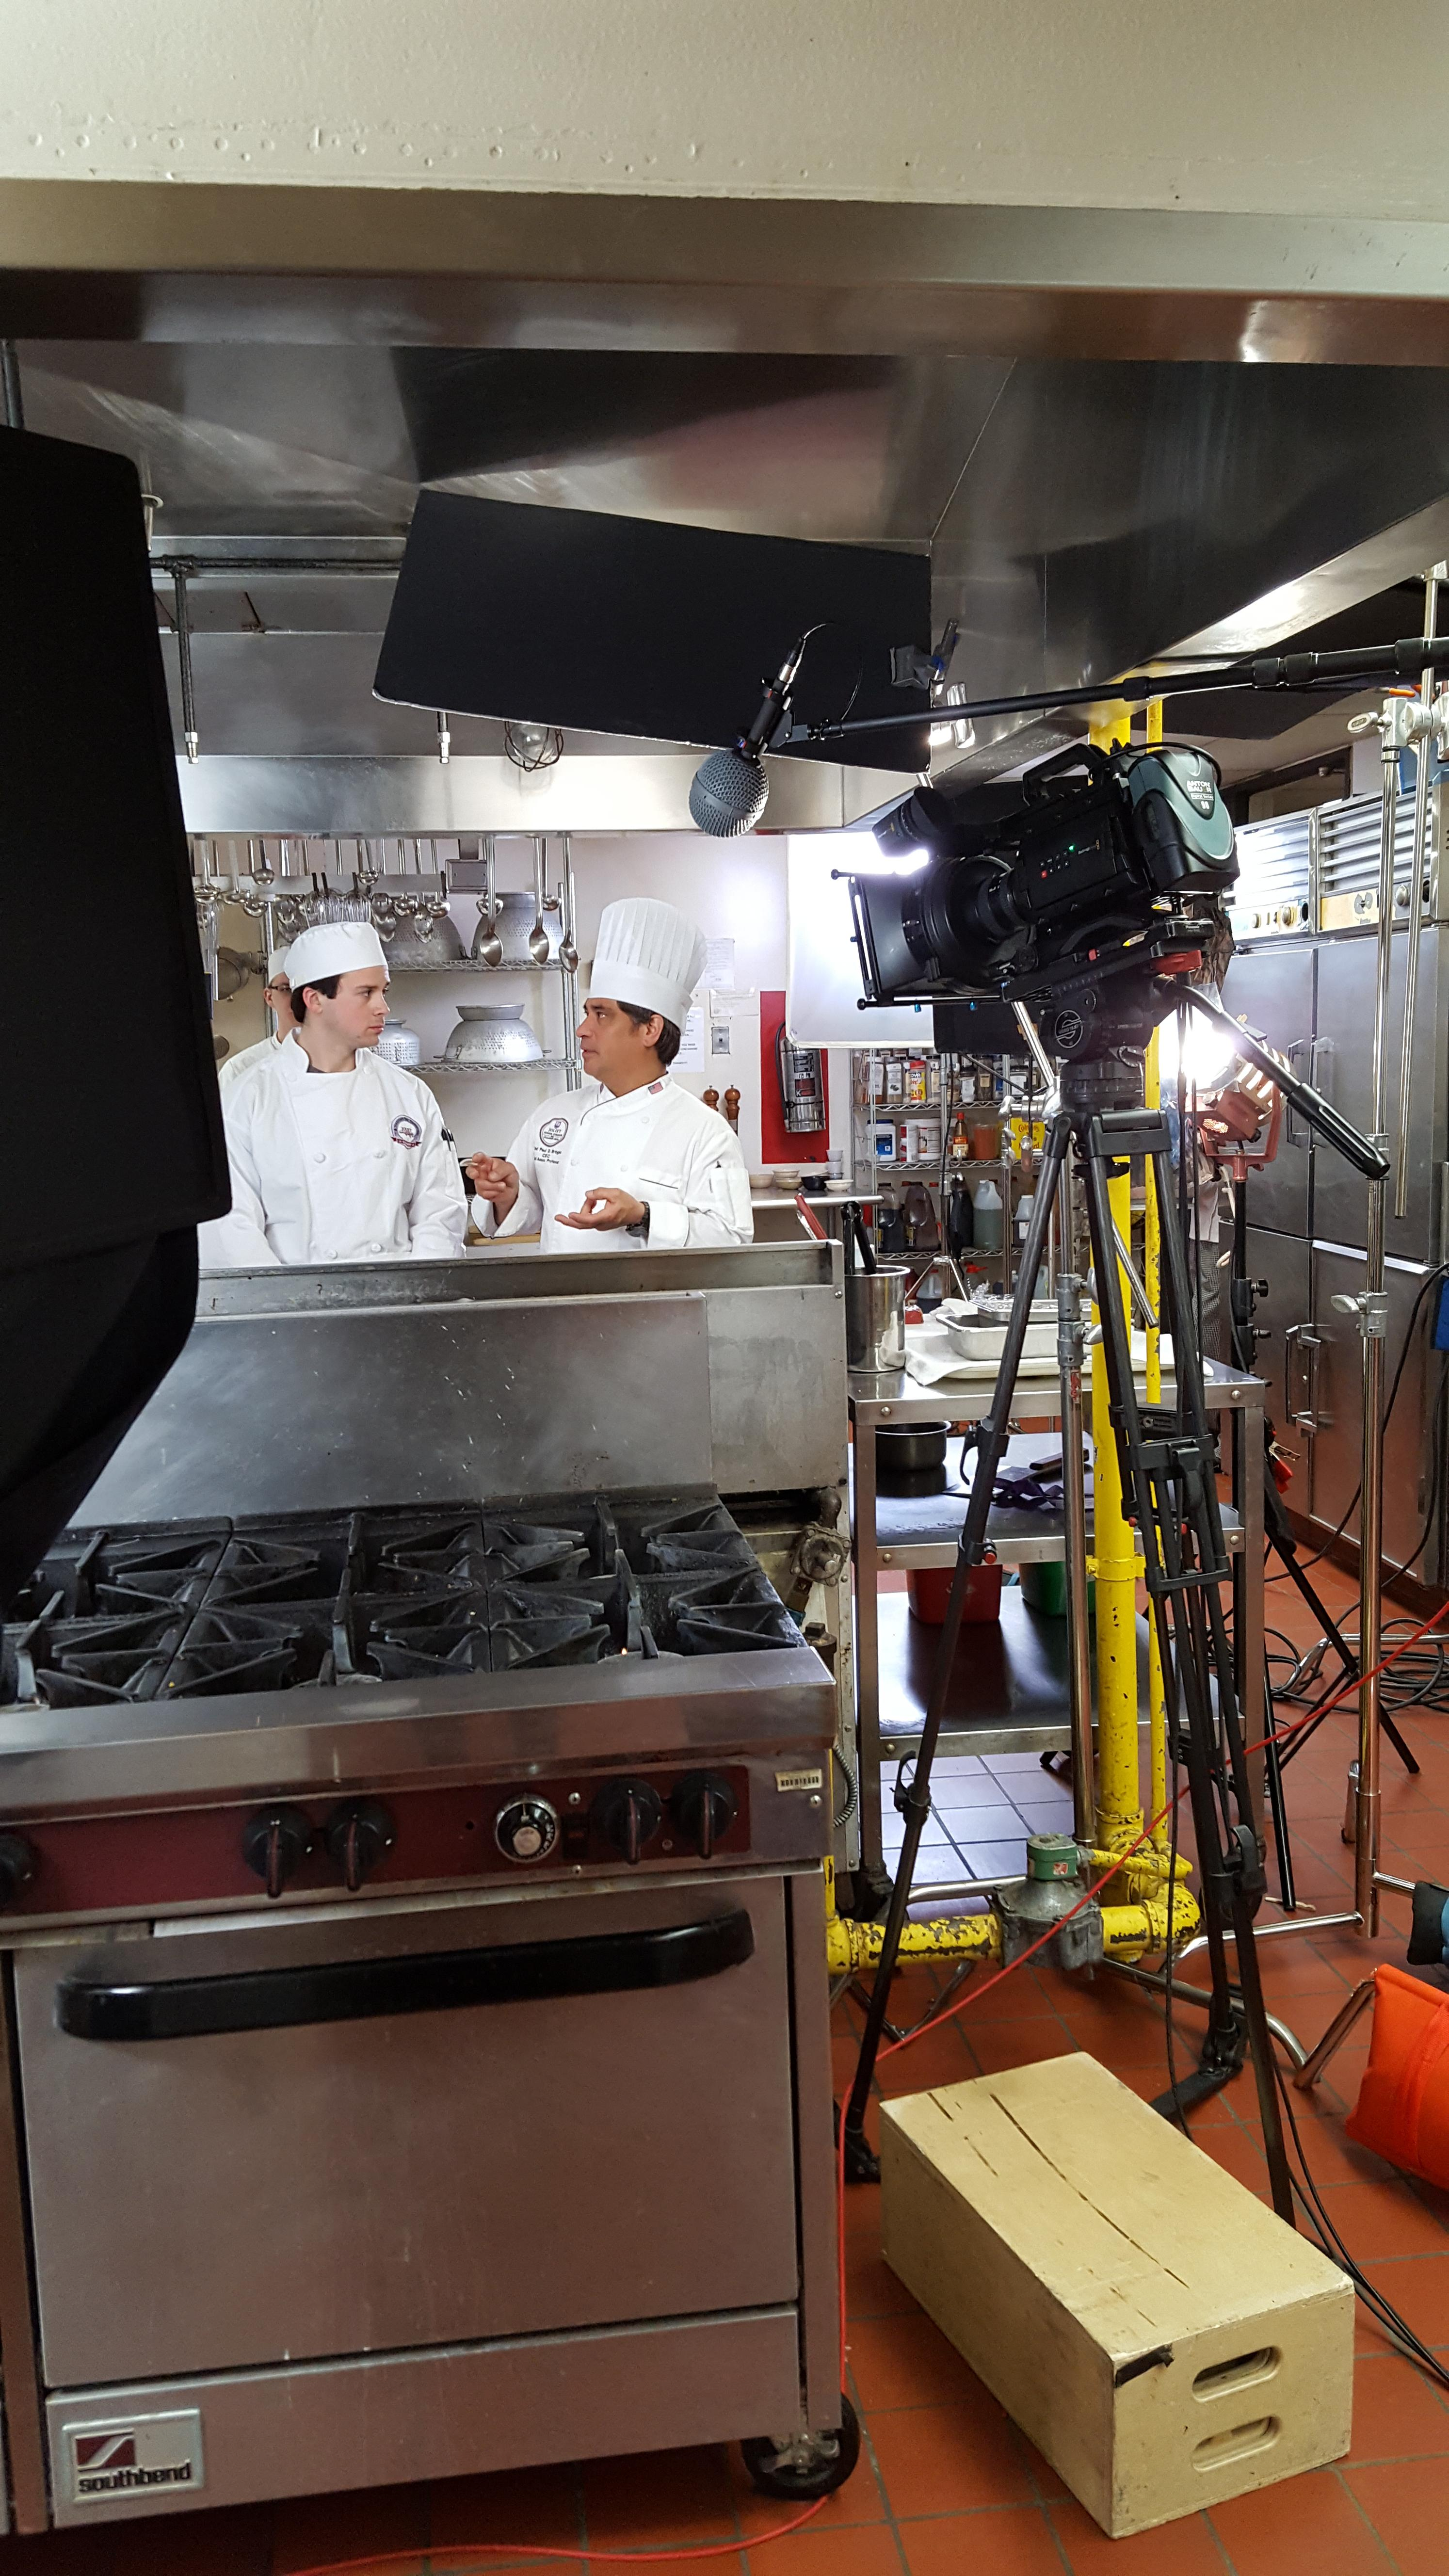 jjc commercials culinary behind the scenes look students